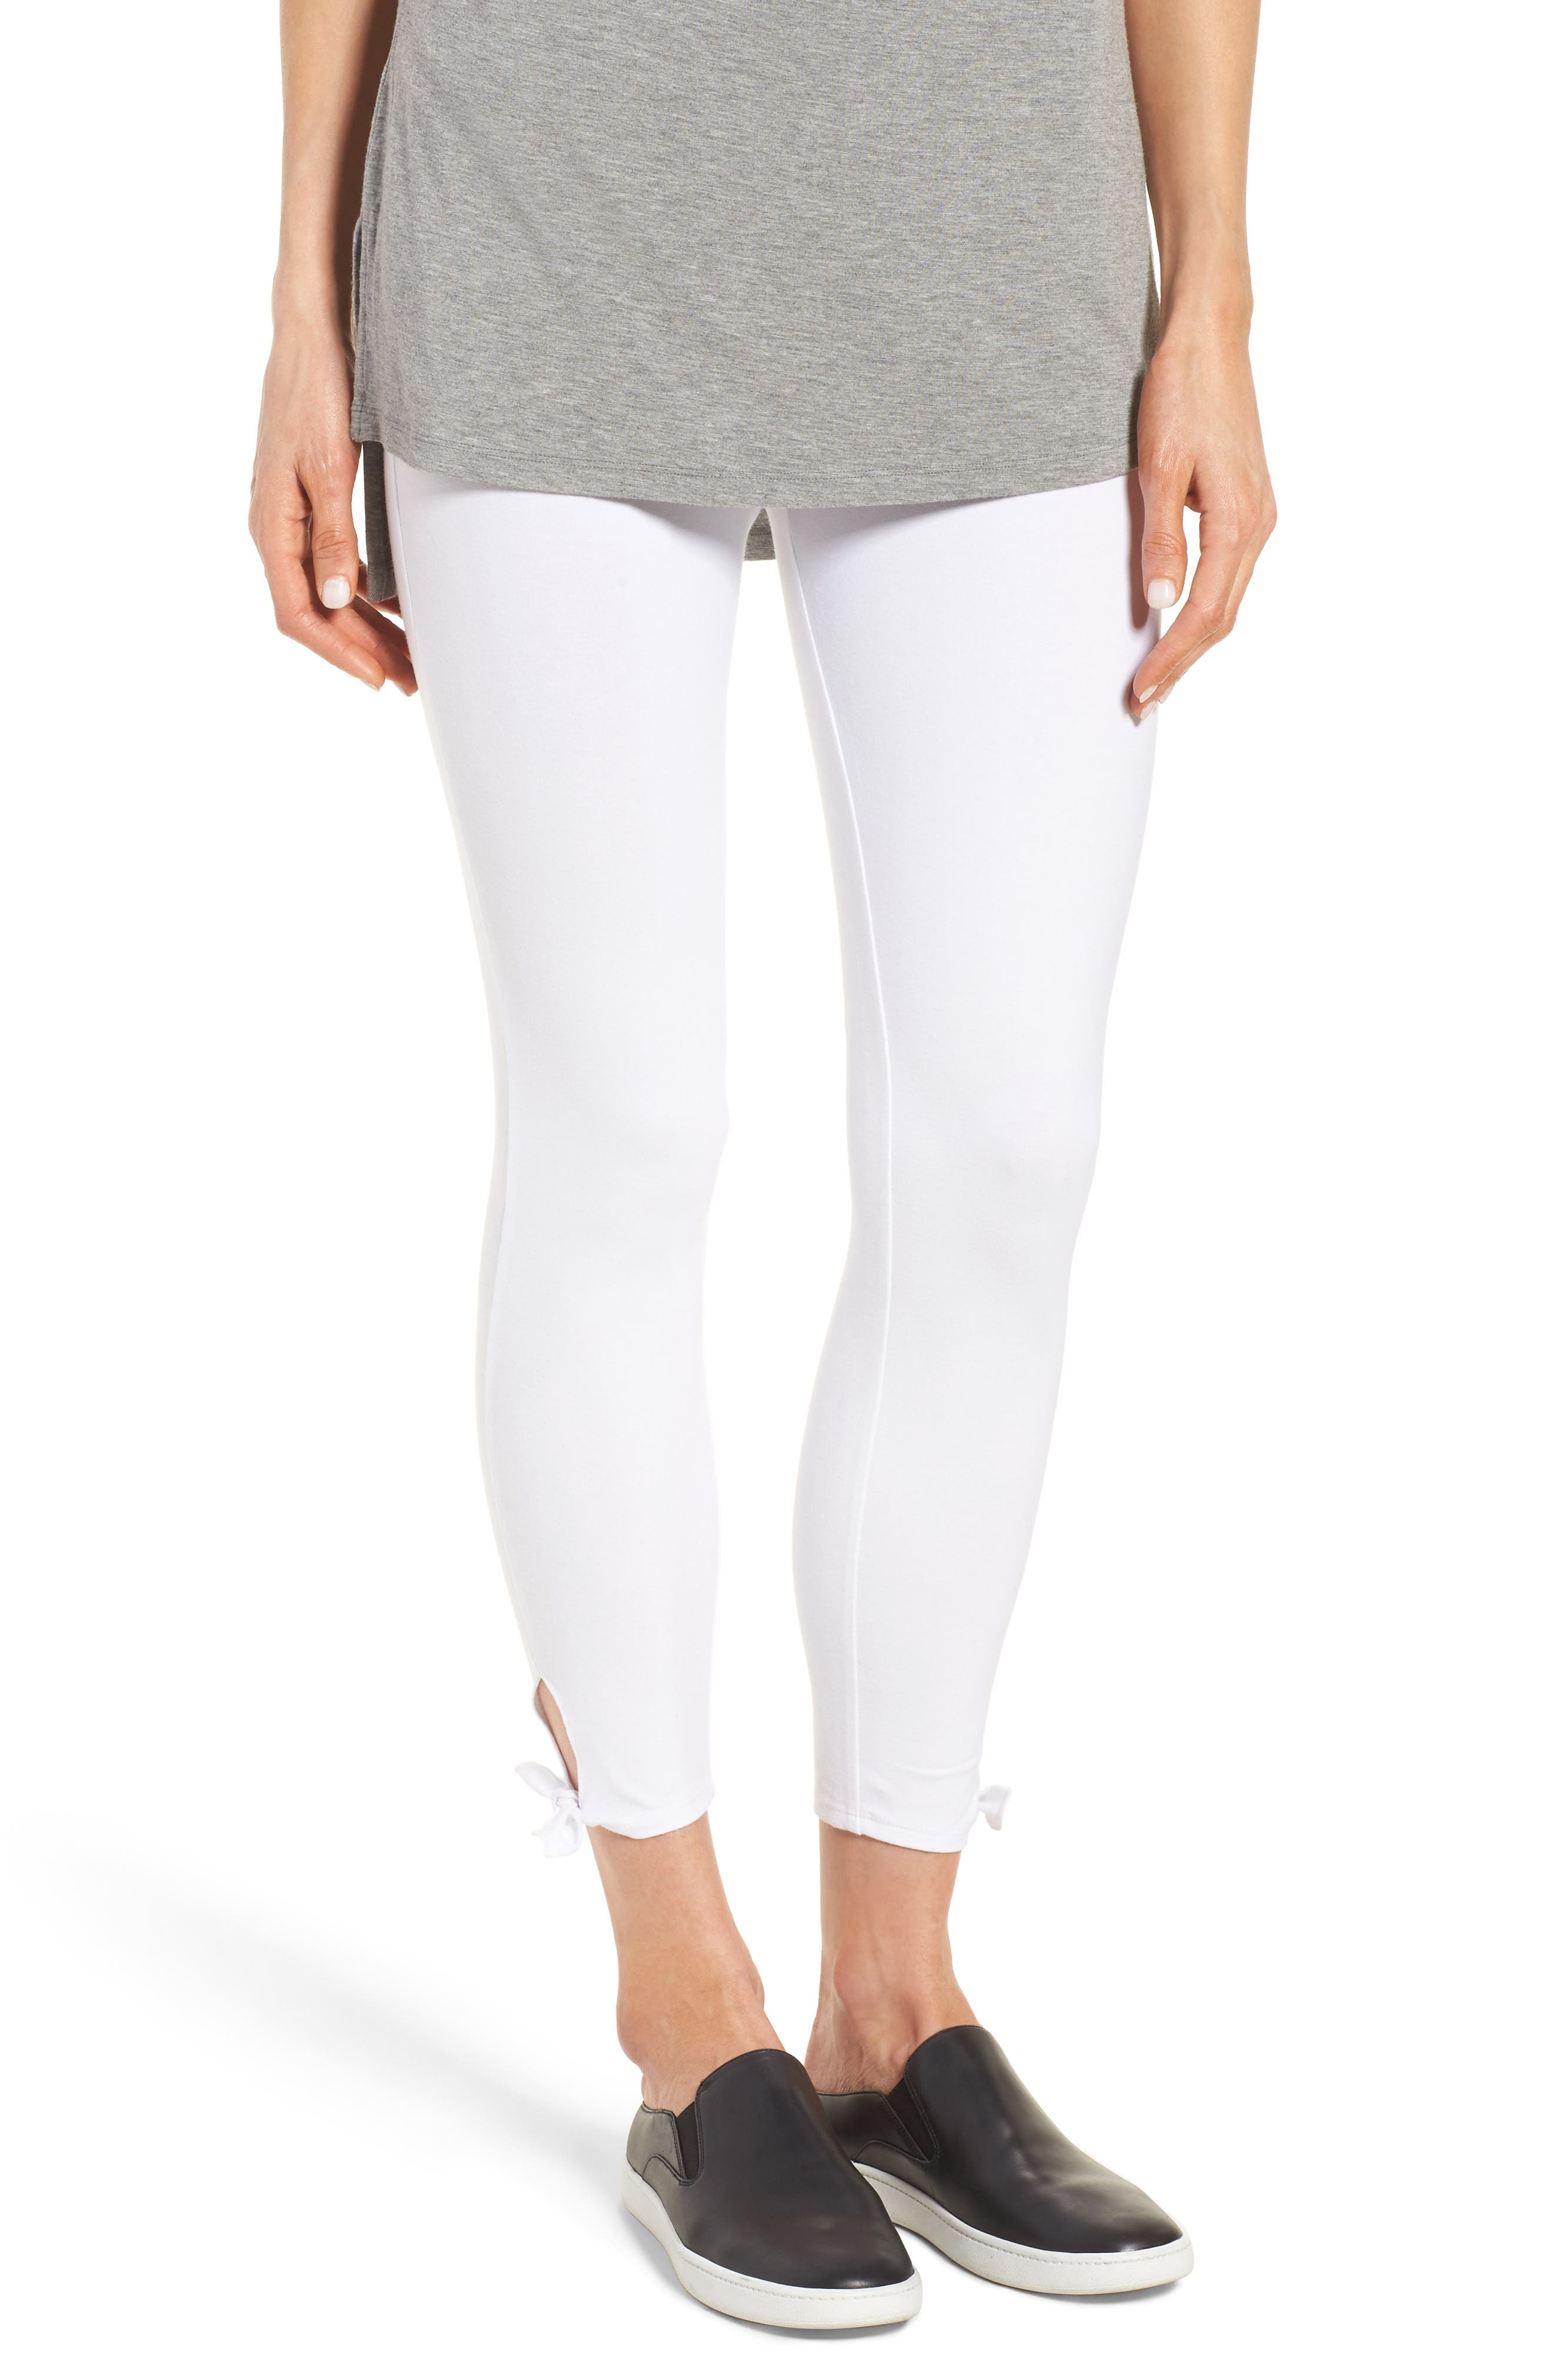 Tie Ankle Leggings,                         Main,                         color, White